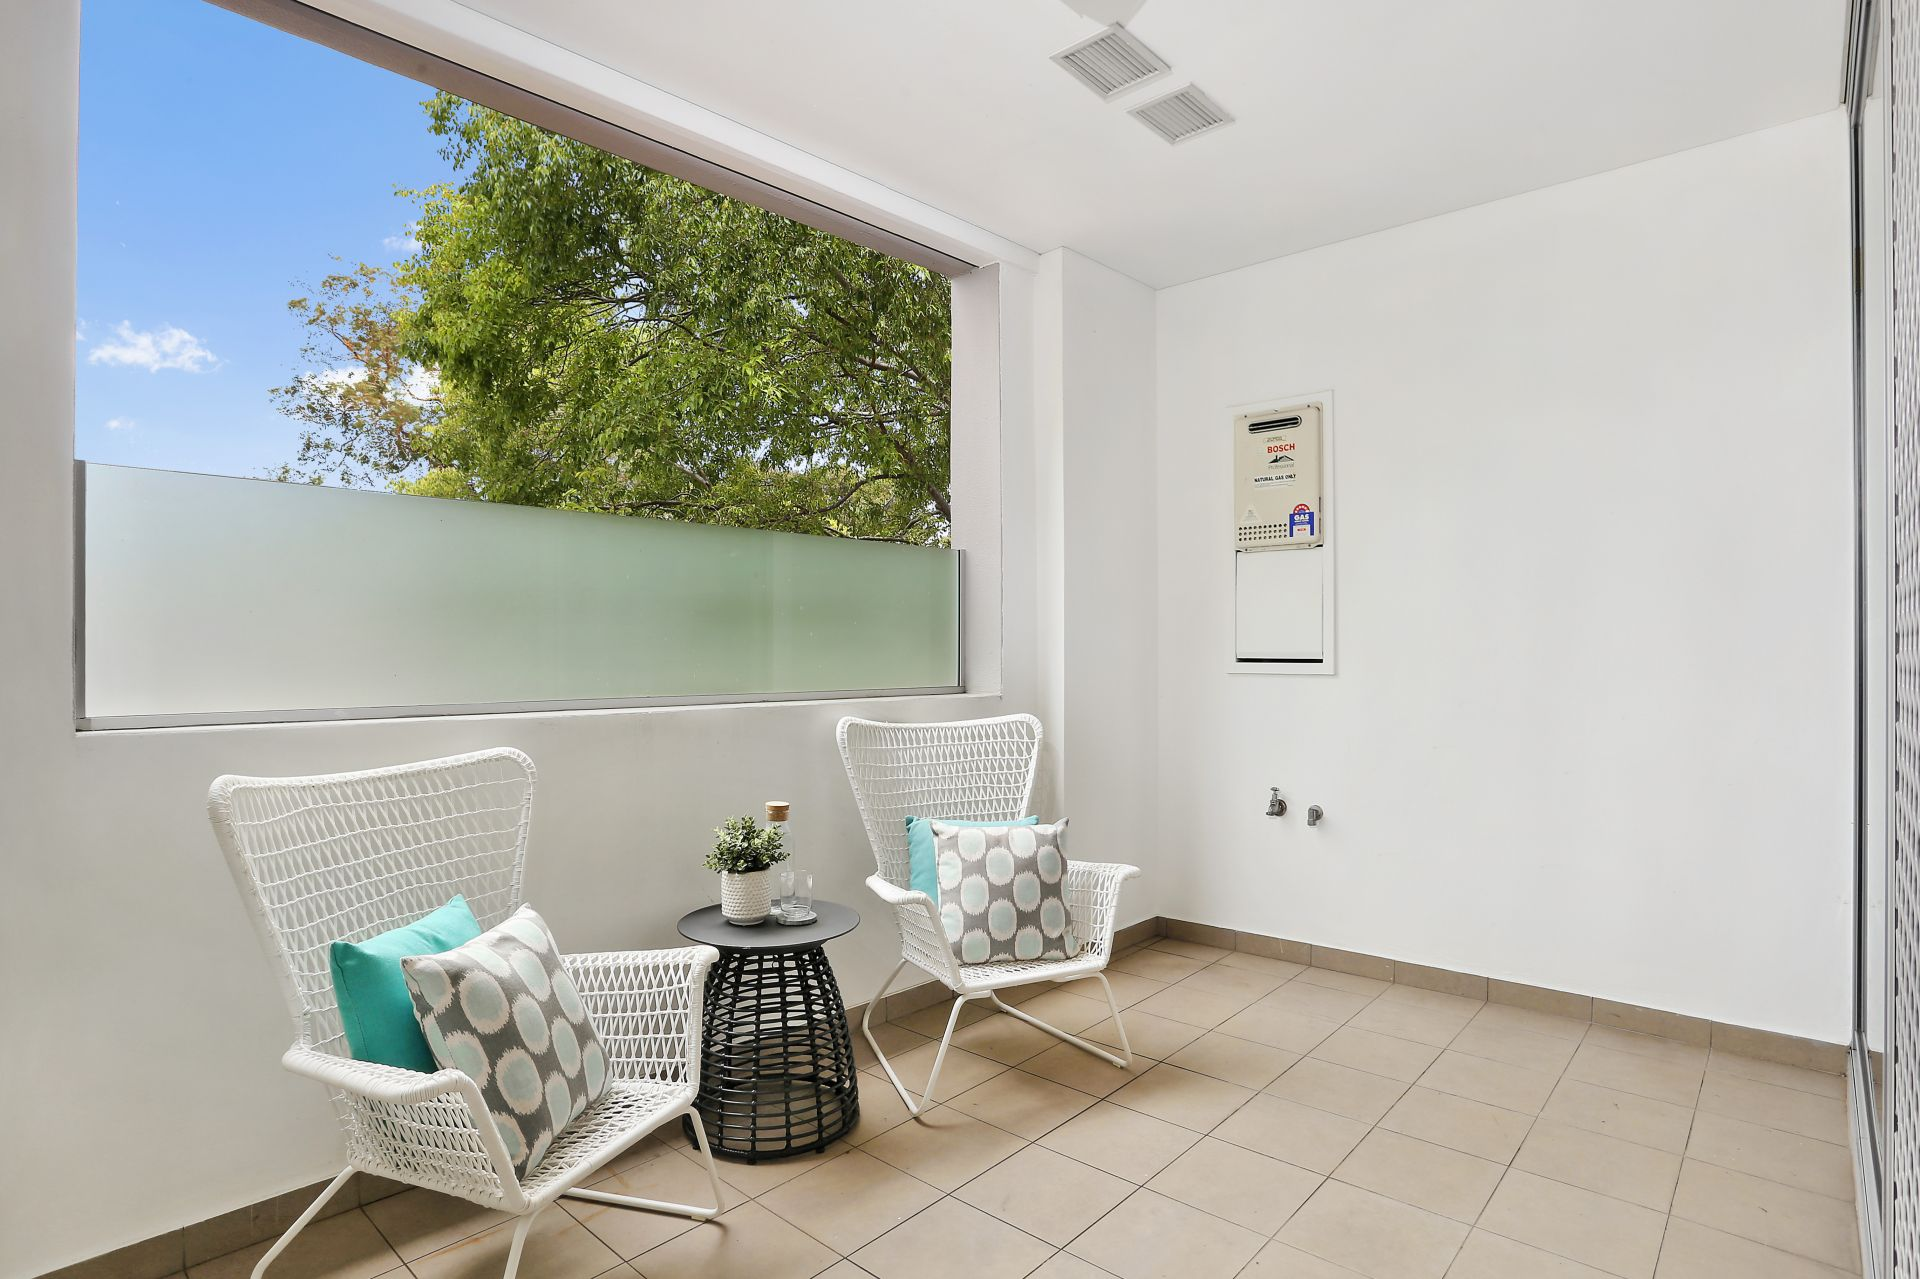 13/42-44 Gibbens Street, Camperdown NSW